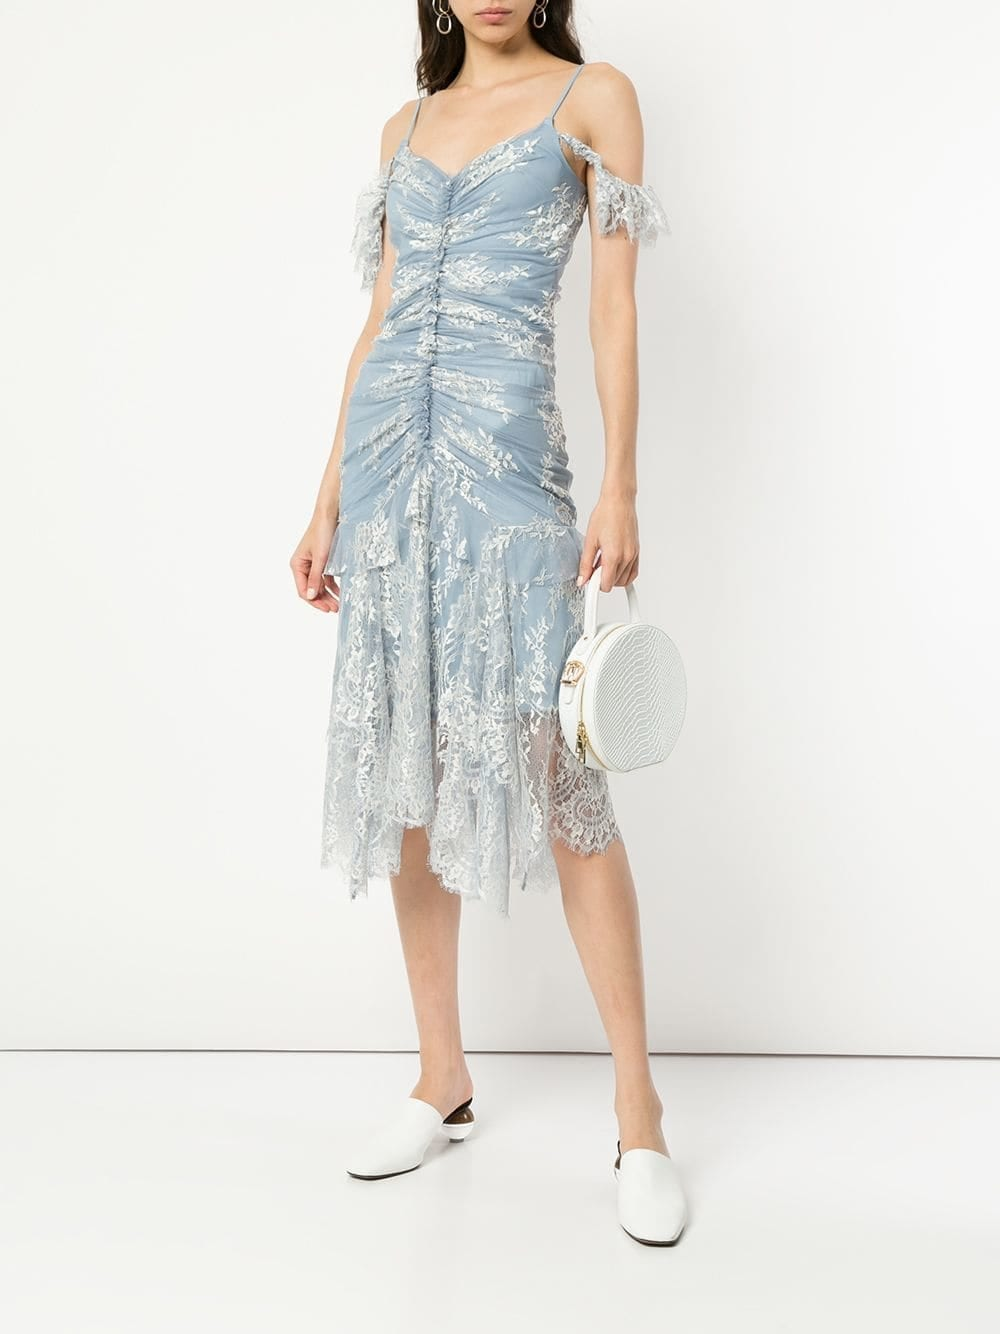 ALICE-MCCALL-Plus-One-Blue-Dress